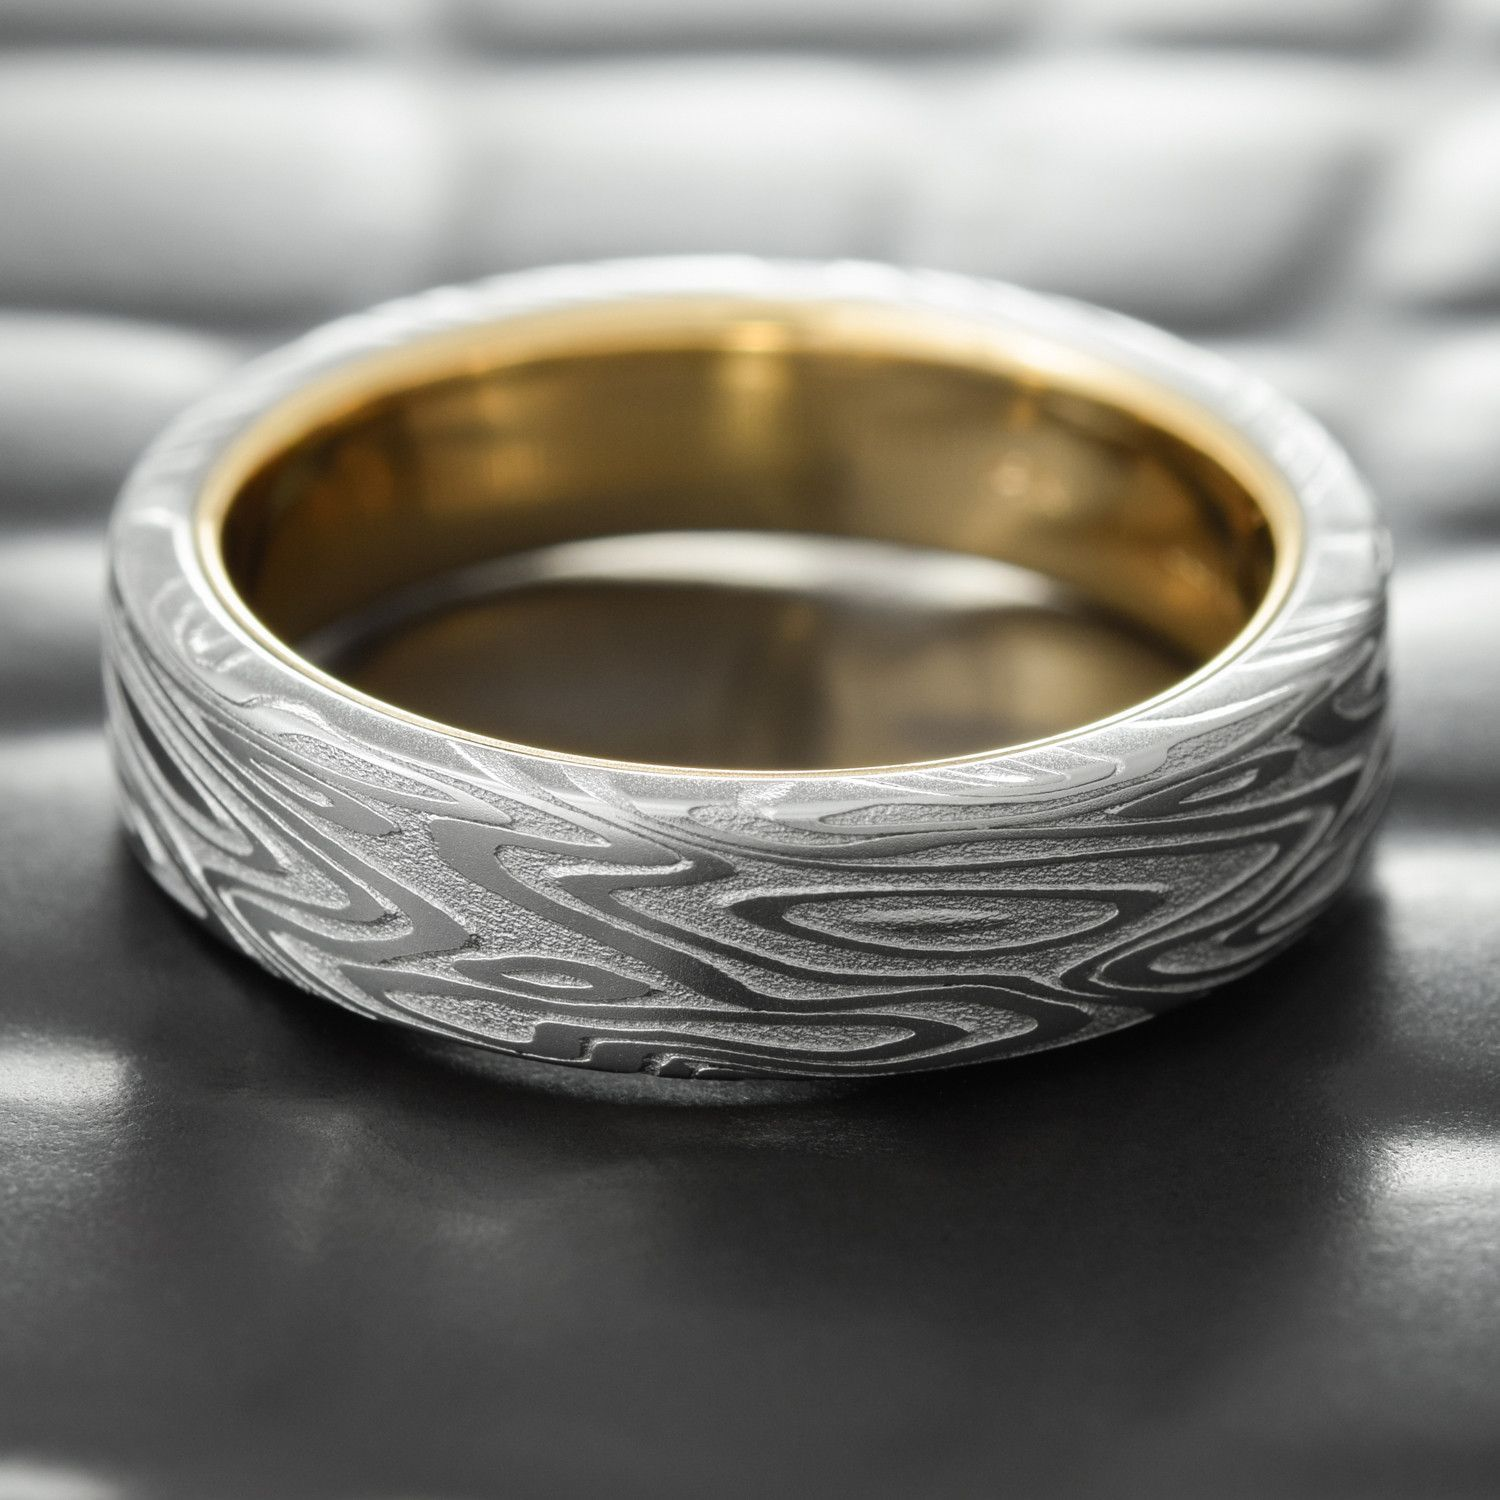 Flat Damascus Steel Mens Wedding Band With 14k Gold Liner 7mm Wide Ring Organic Wood Steel Wedding Ring Thick Diamond Engagement Ring Rings For Men